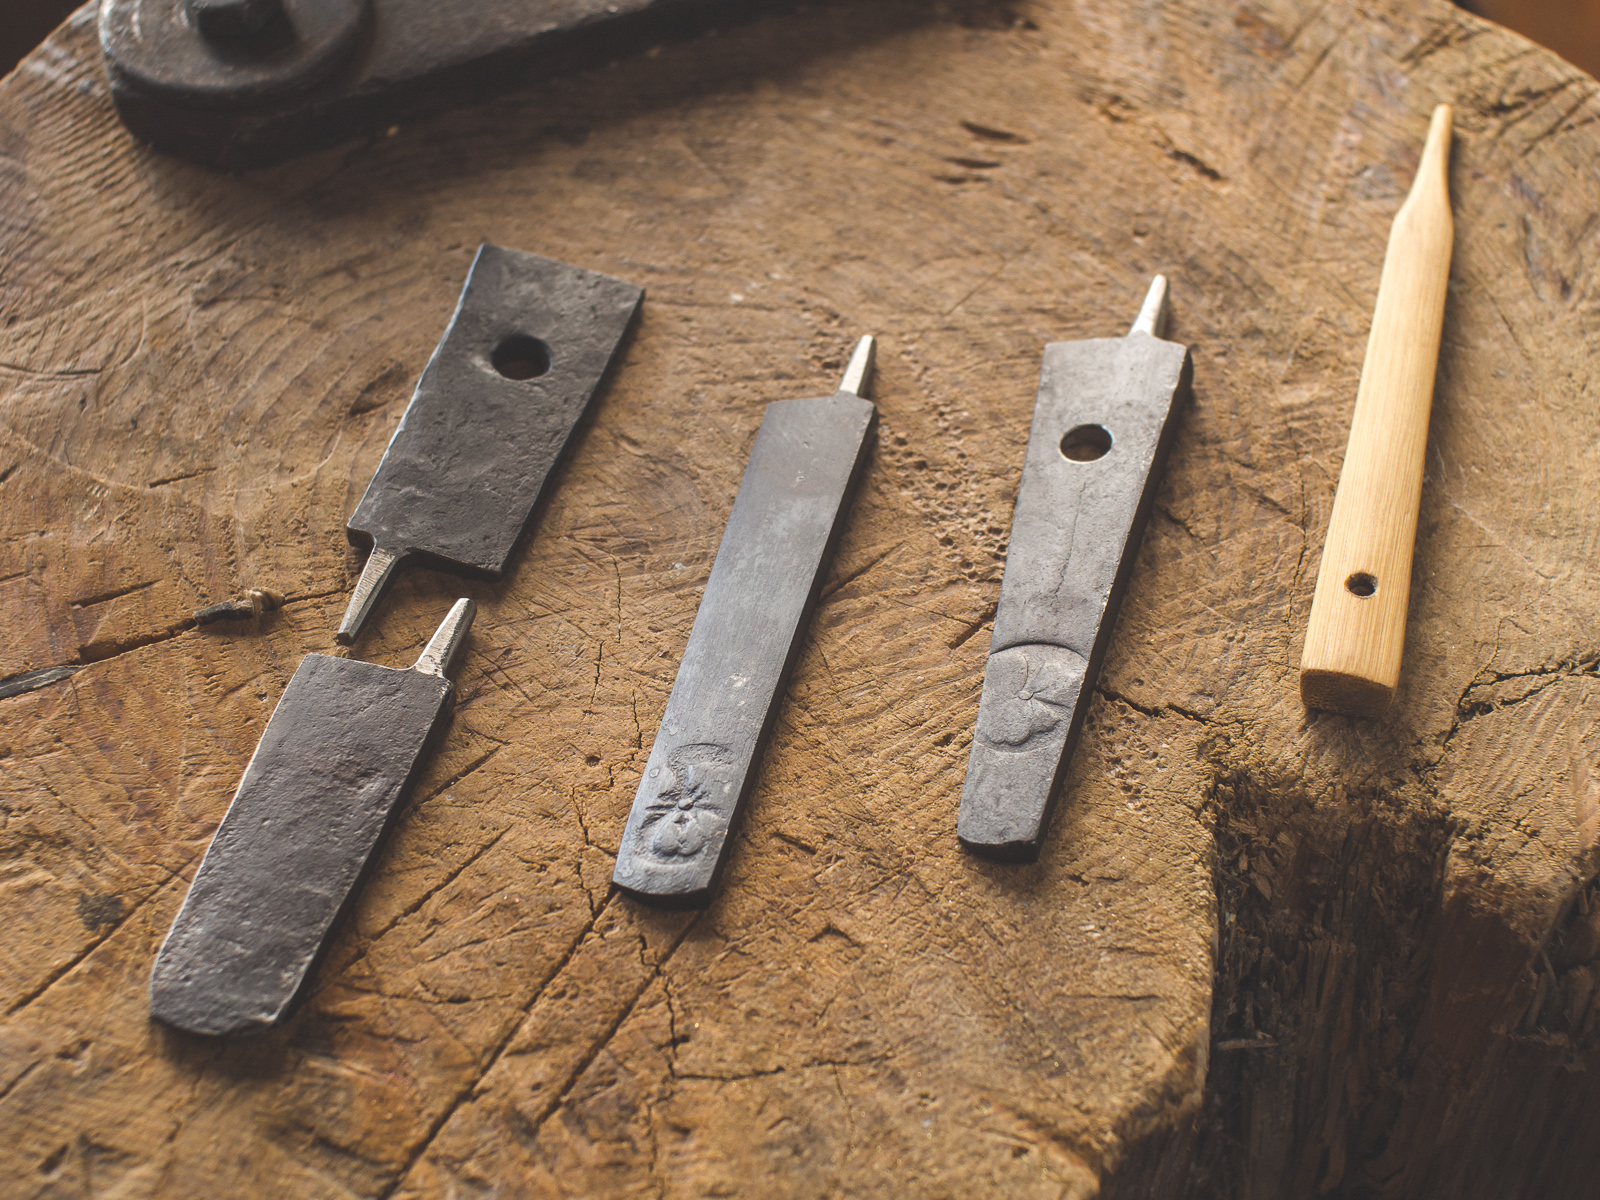 IslandBlacksmith: Hand crafted Japanese inspired tanto and fusion style knives.